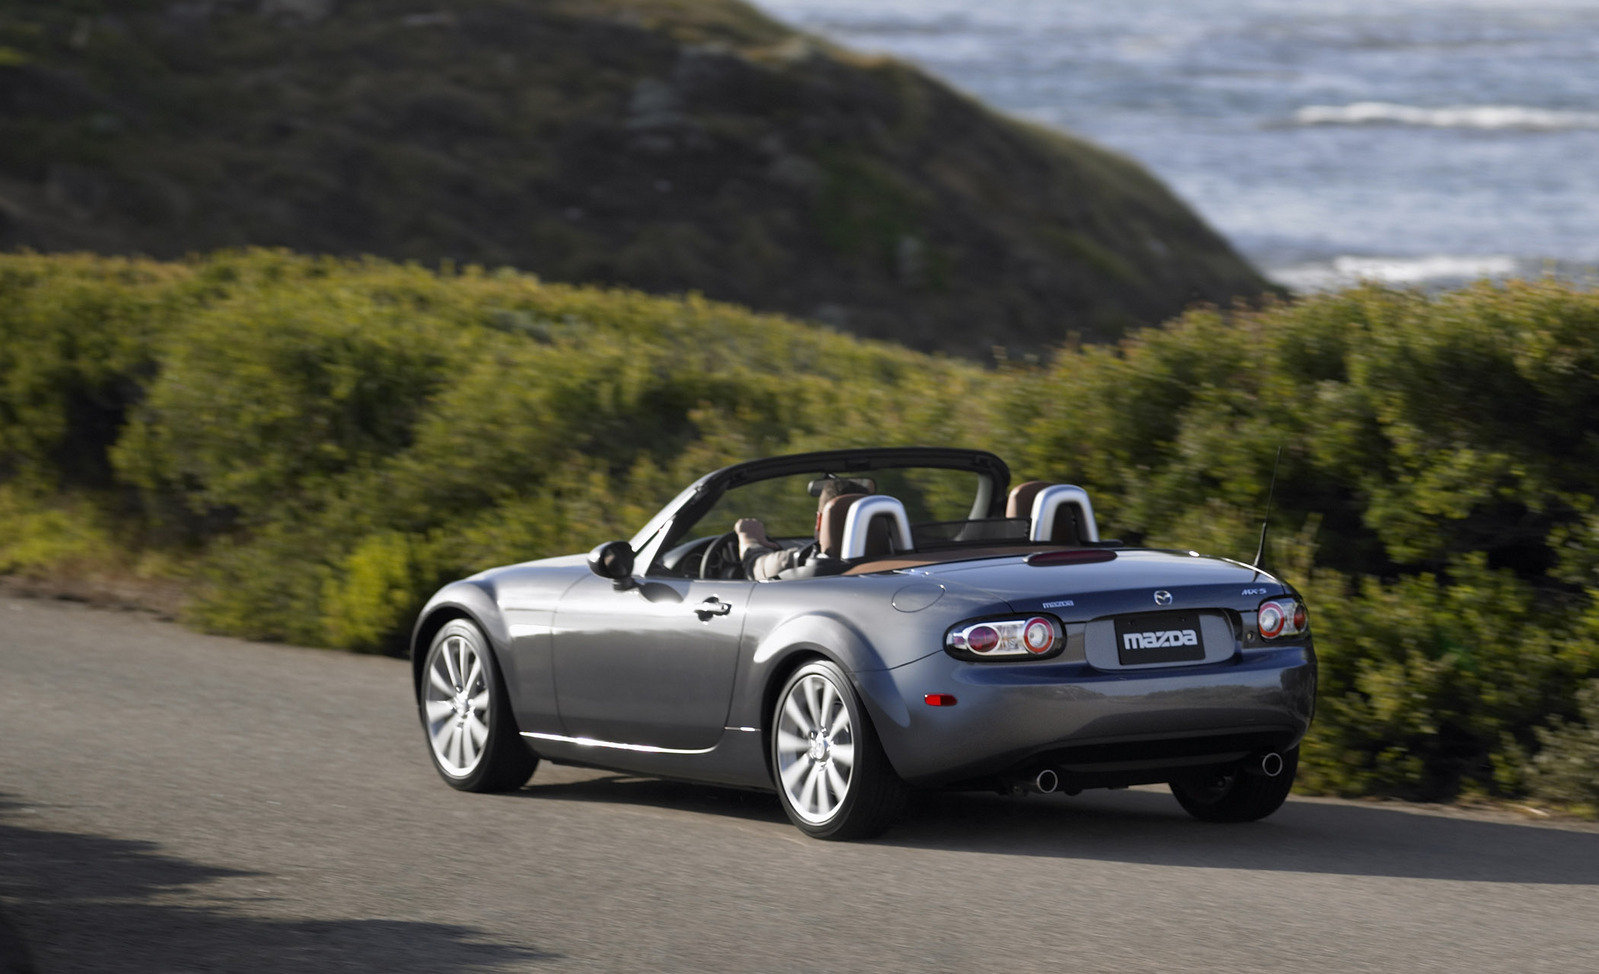 2006 mazda mx 5 miata picture 98346 car review top speed. Black Bedroom Furniture Sets. Home Design Ideas